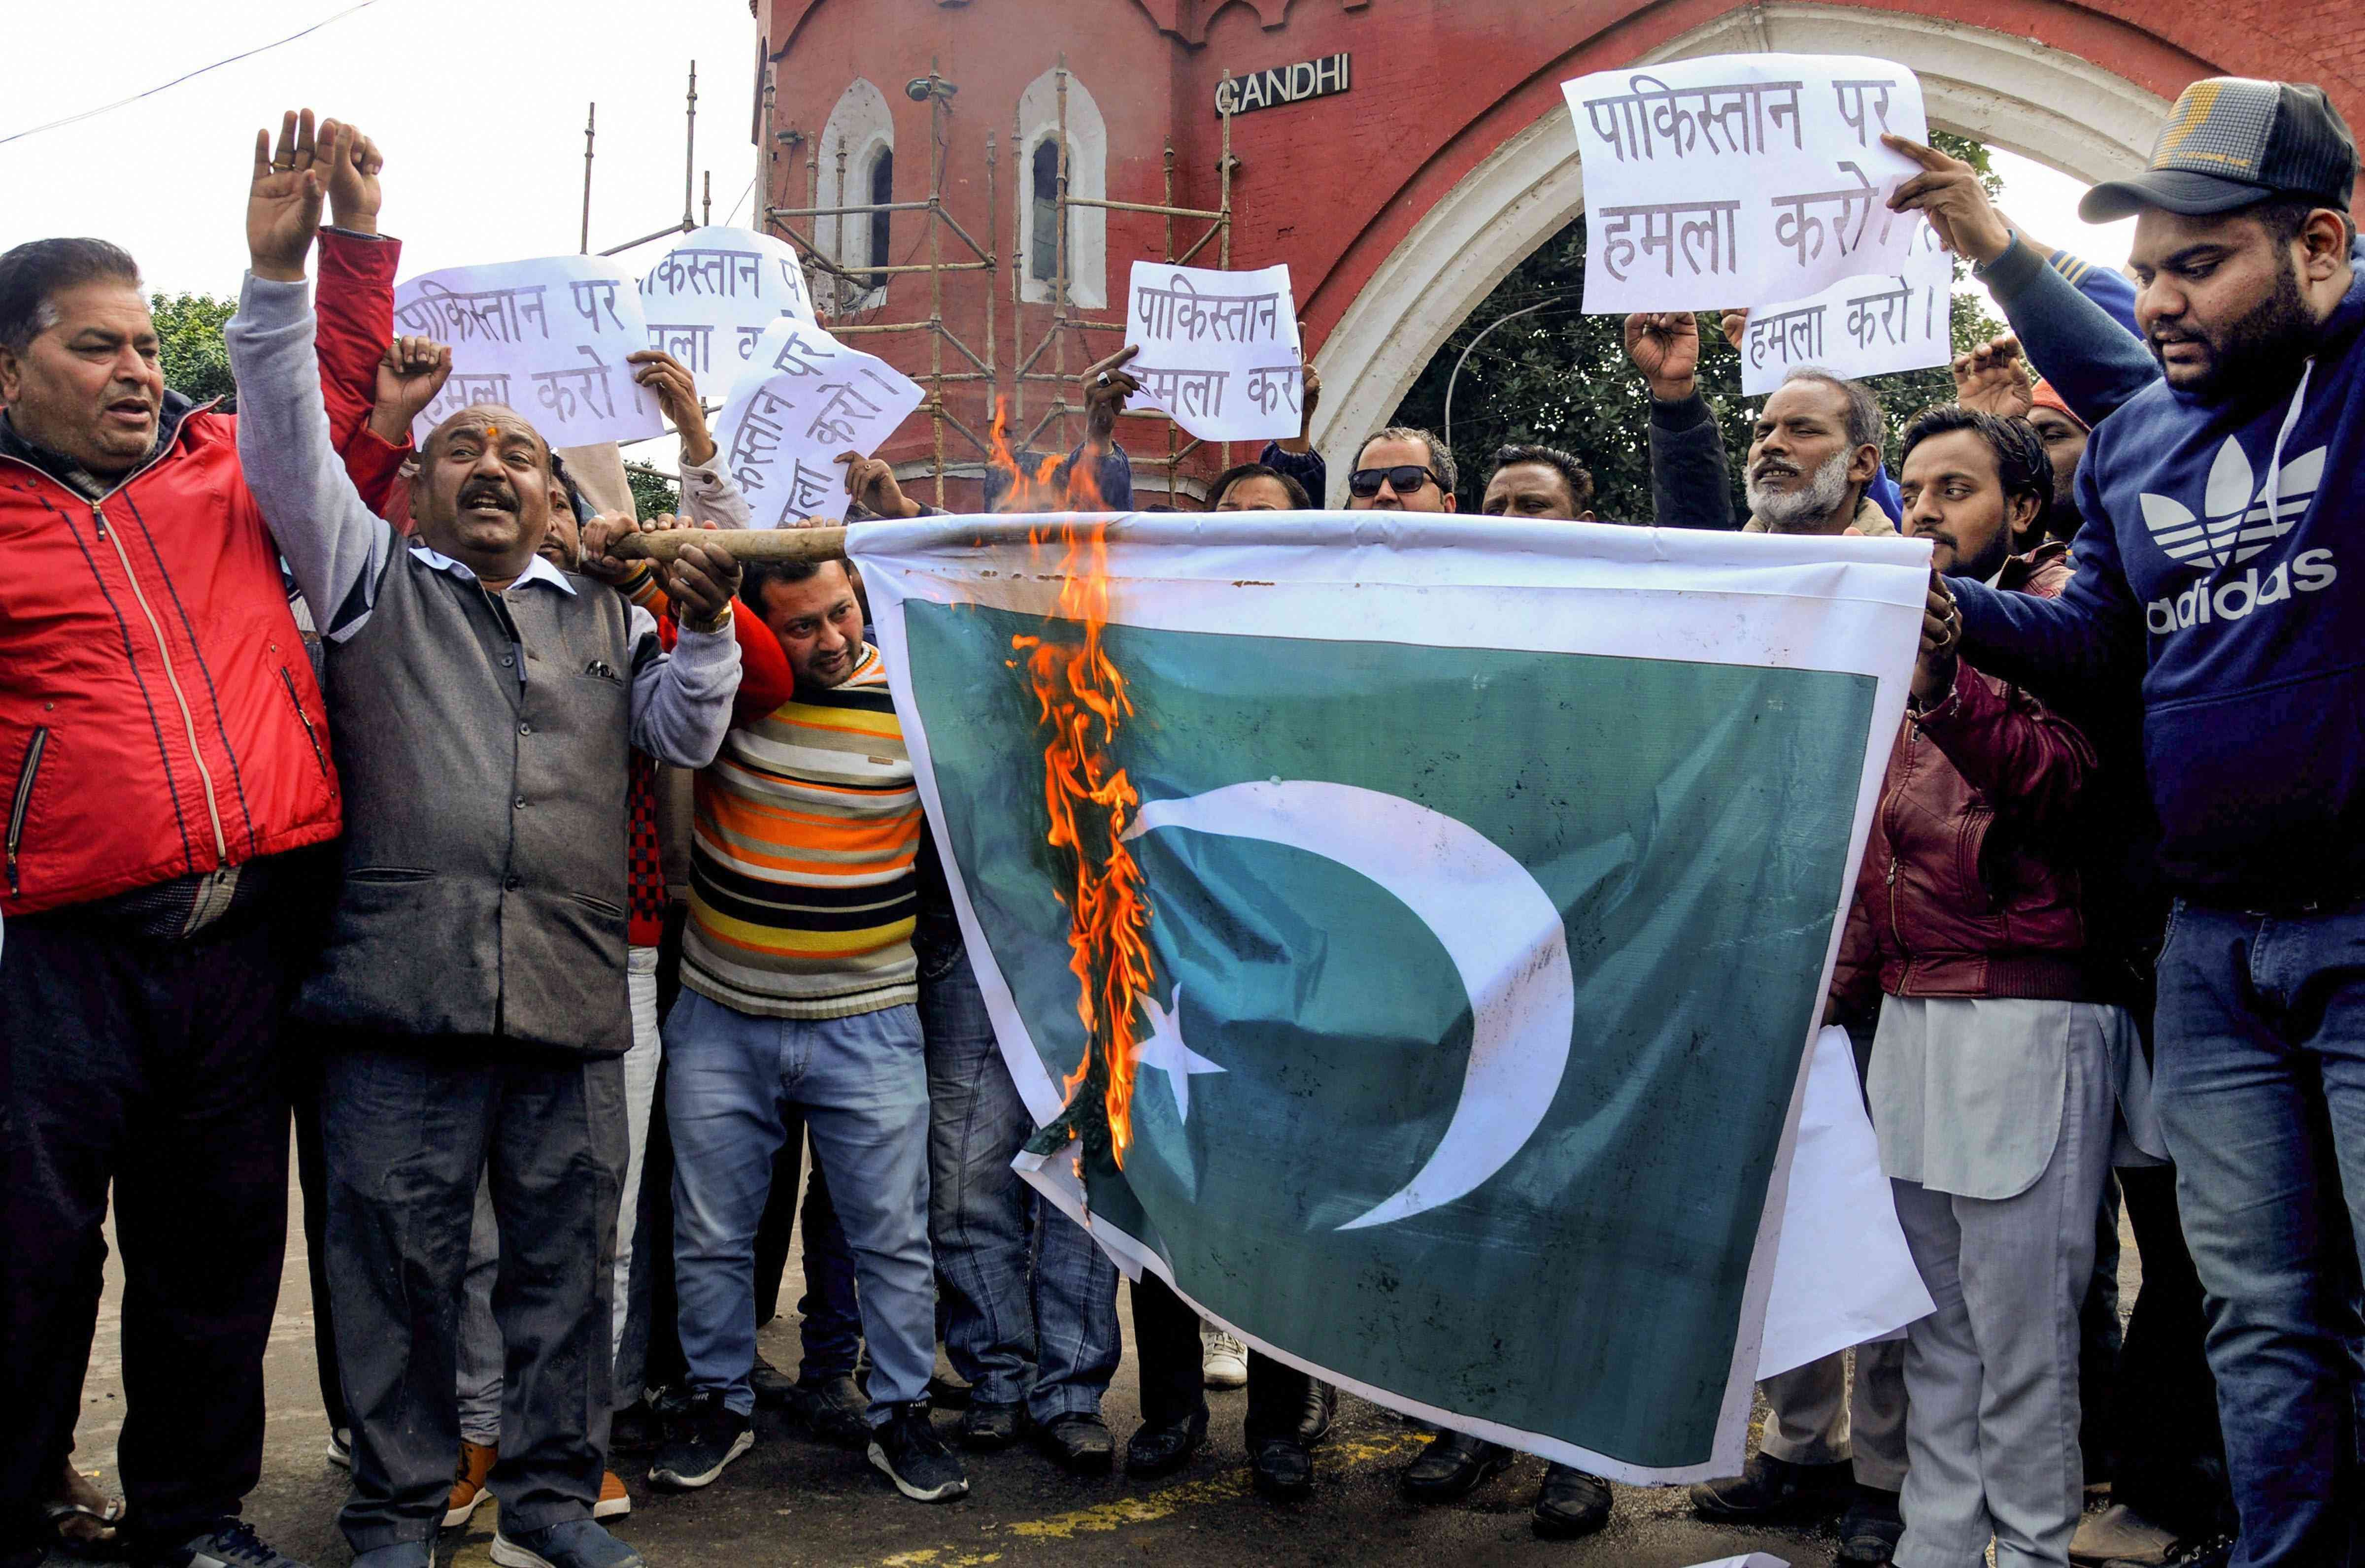 Congress workers in Amritsar set fire to a Pakistan flag and raise banners calling for action against Pakistan. Credit: PTI.